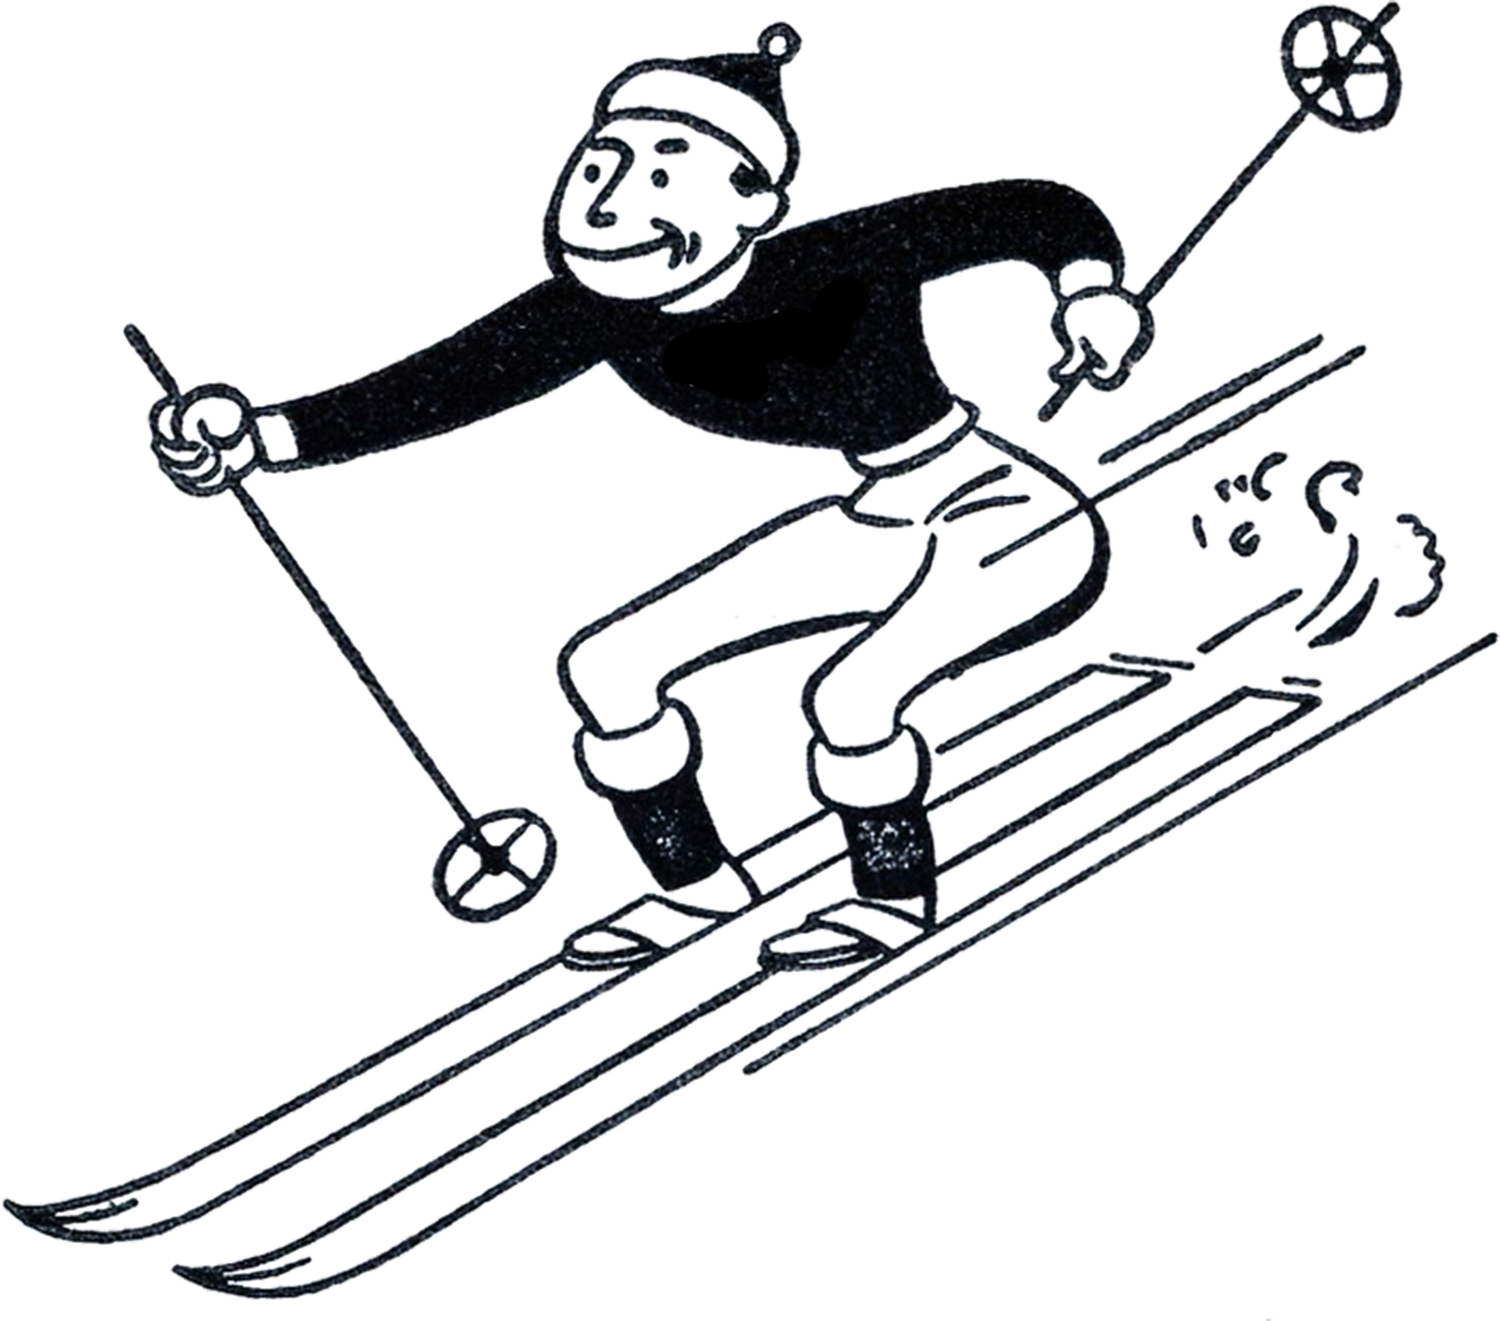 Free Skier Cliparts, Download Free Clip Art, Free Clip Art.